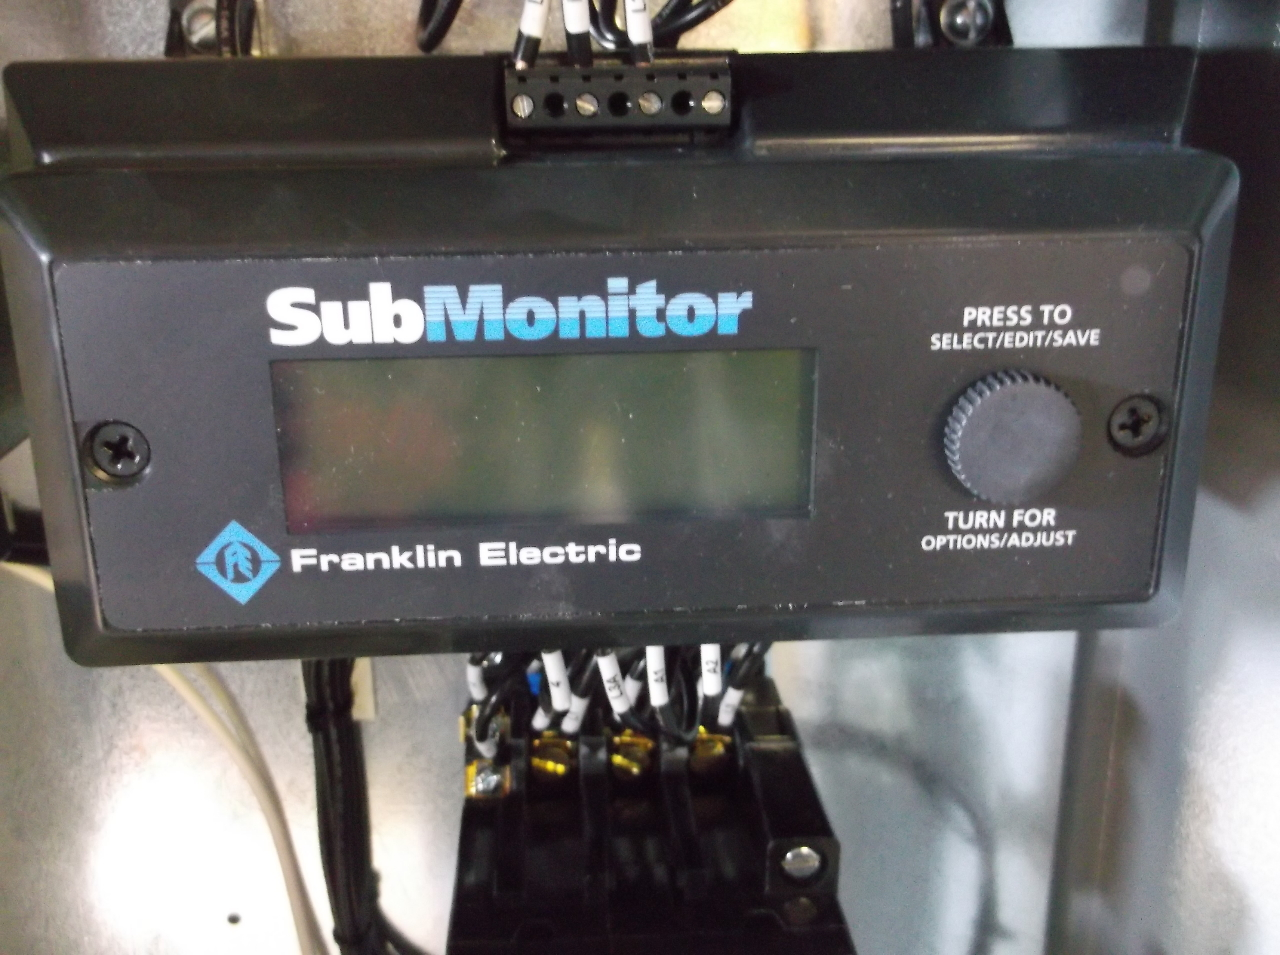 Franklin Electric Submonitor Control Panel Model 281 104